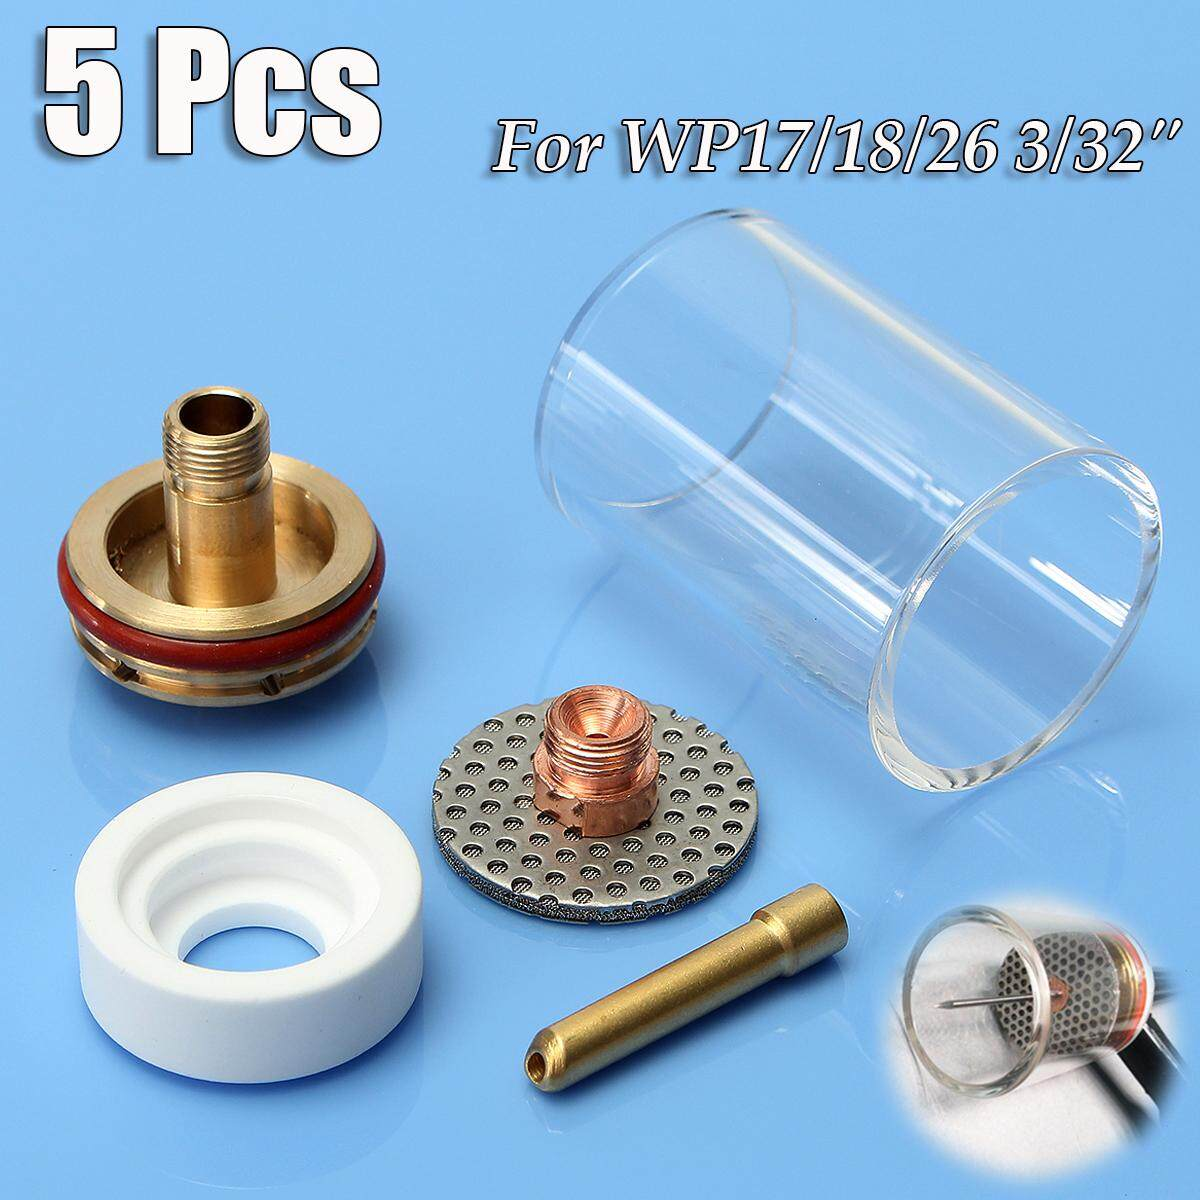 5Pcs Welding Torch Glass Cup Champagne Nozzle Kit For TIG WP17/18/26 3/32 2.4mm